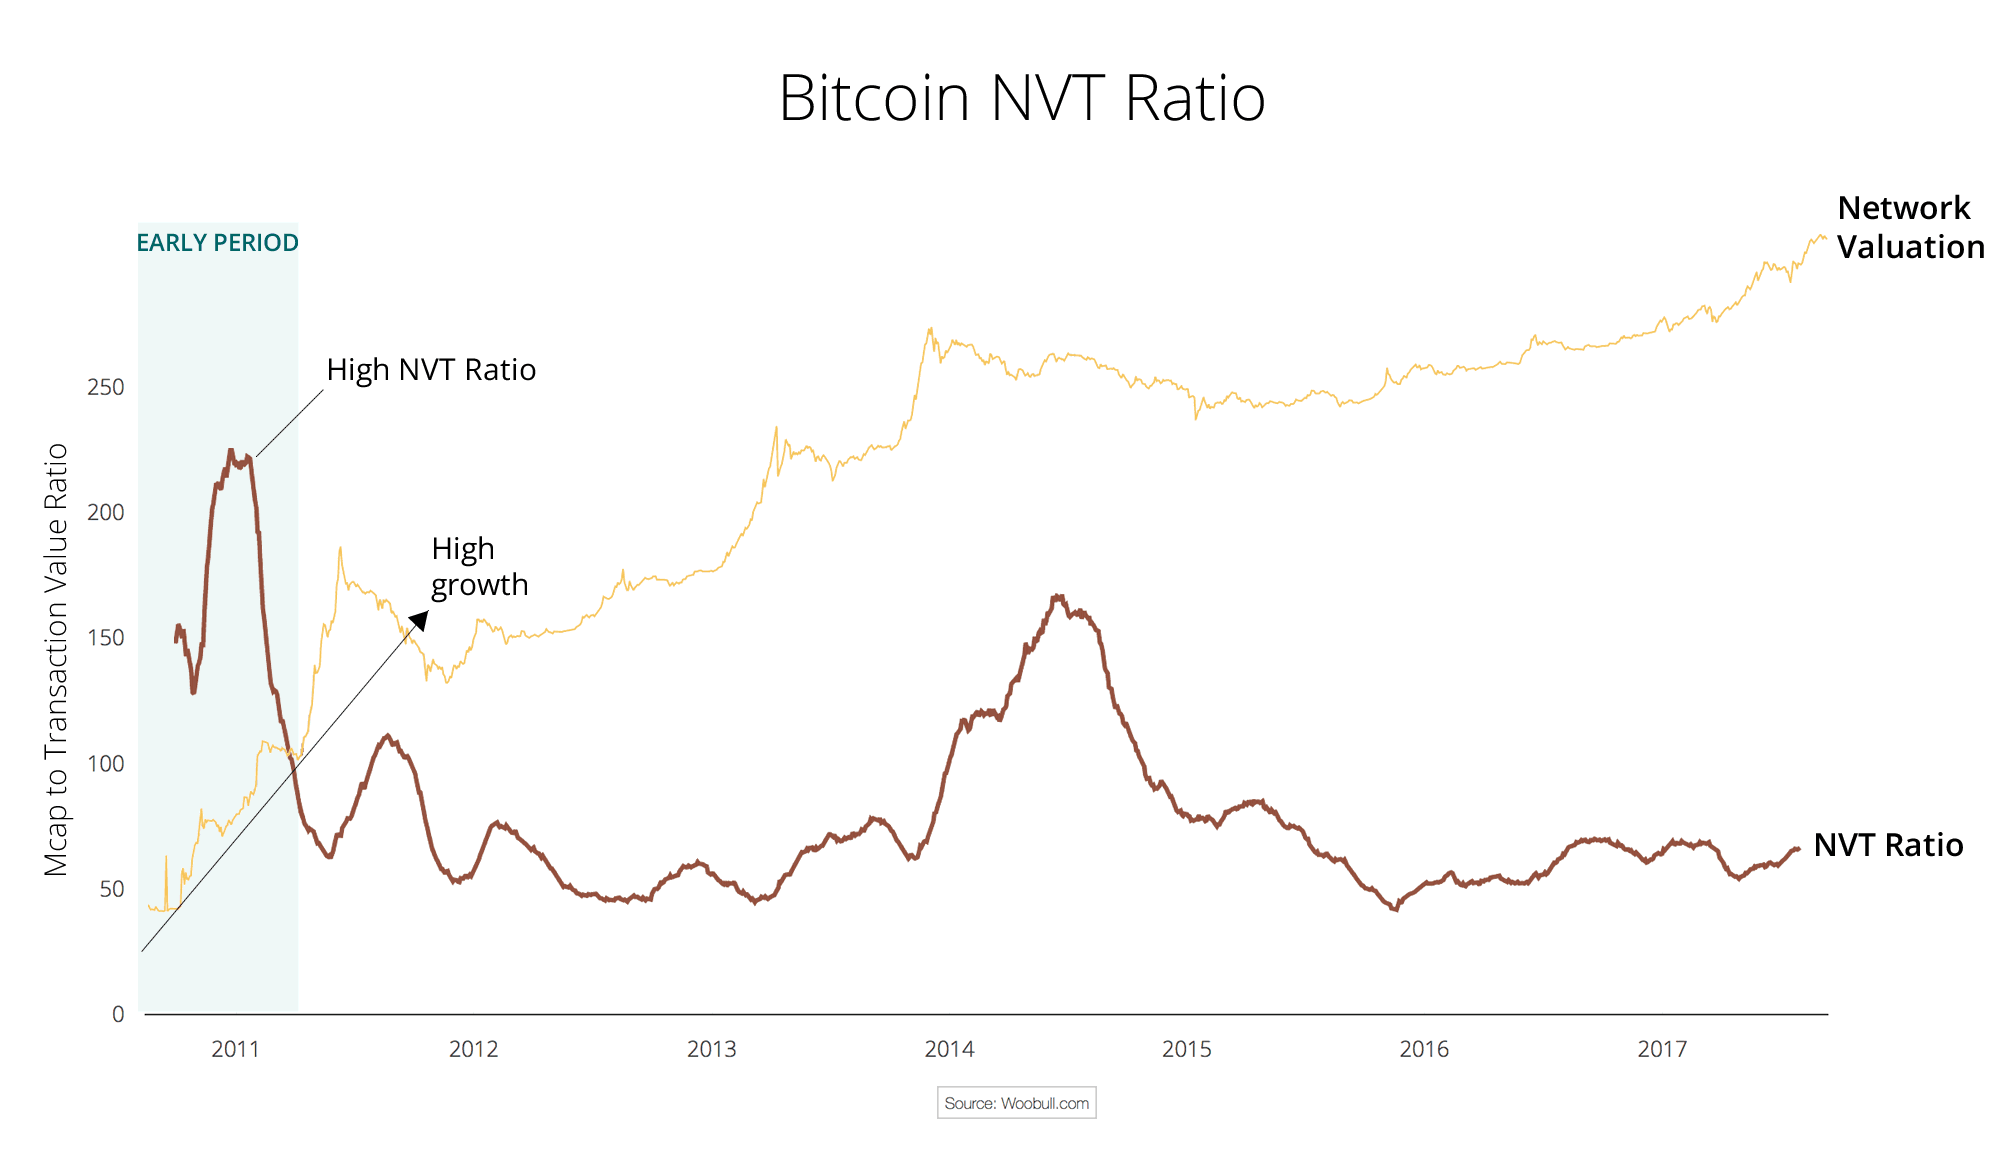 High growth can create a high NVT Ratio